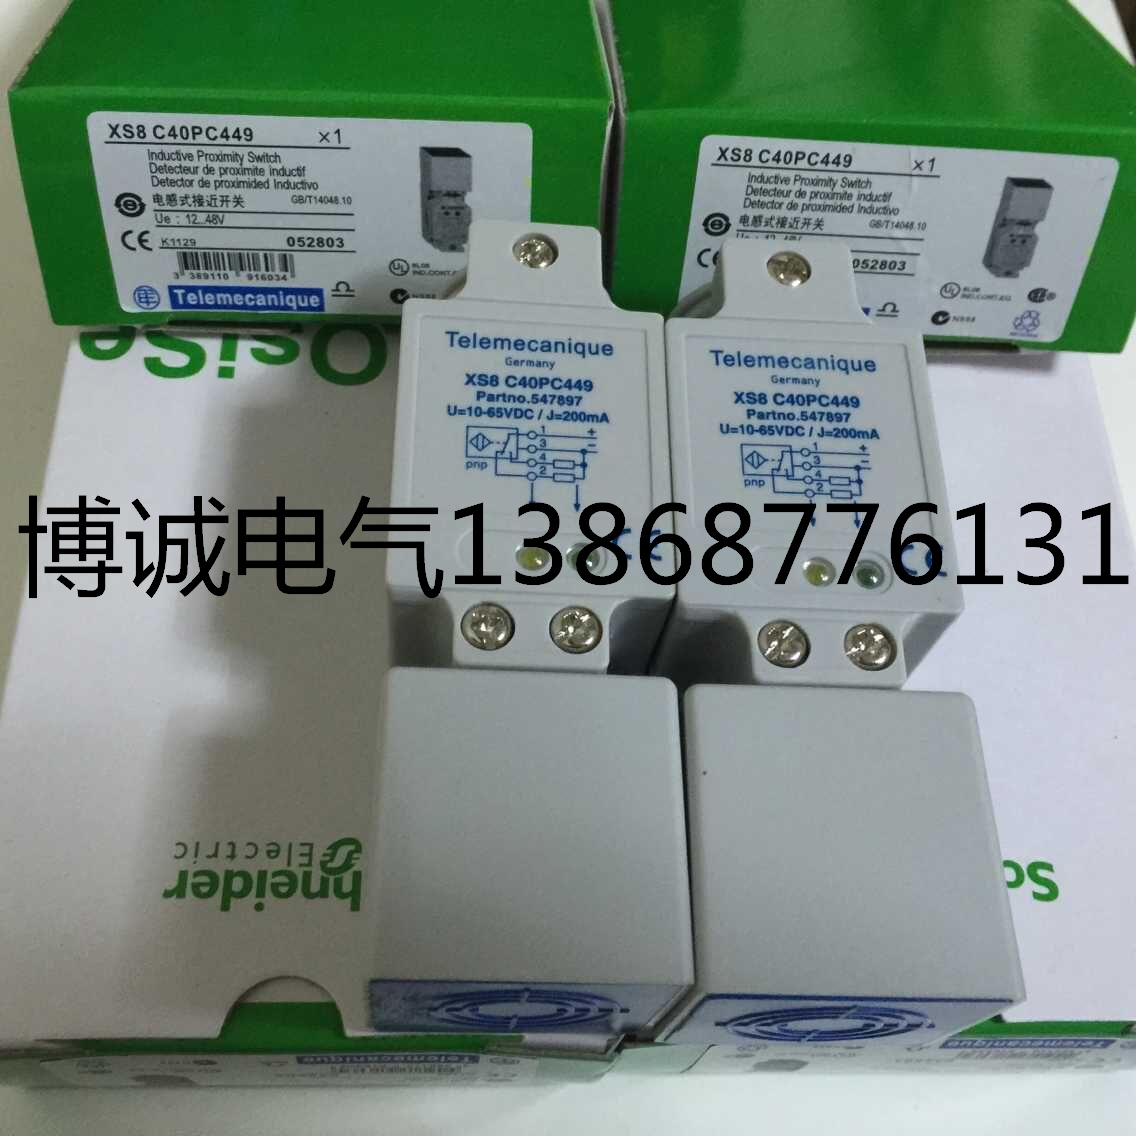 New original XS8C40PC449 XS8-C40PC449 Warranty For Two Year new original xsdj607339 warranty for two year